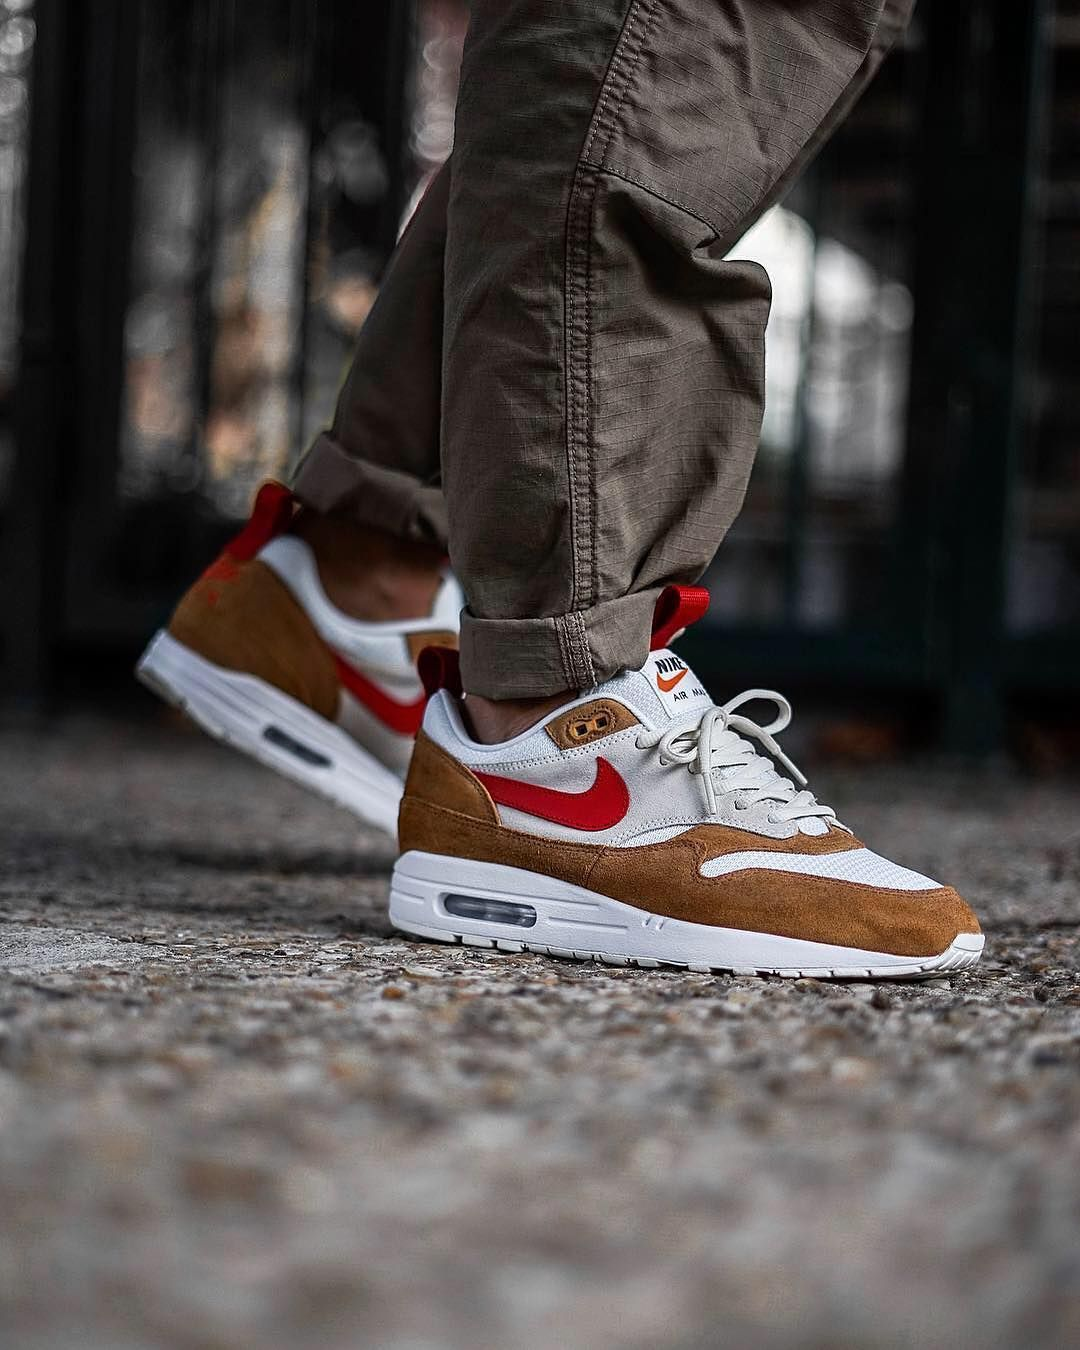 "brand new 2deea 53aeb  theoze on Instagram  ""👨 🚀 Mars Exploration • On feet pics of my Air Max  1 iD custom inspired by the Tom Sachs Mars Yard •  nike  airmax1  tomsachs  ..."